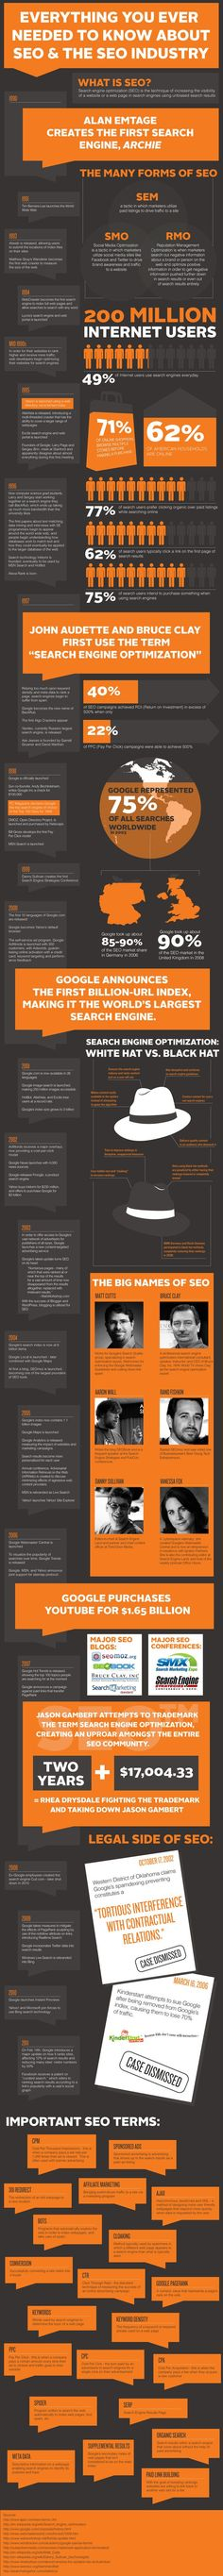 What Is #SEO?